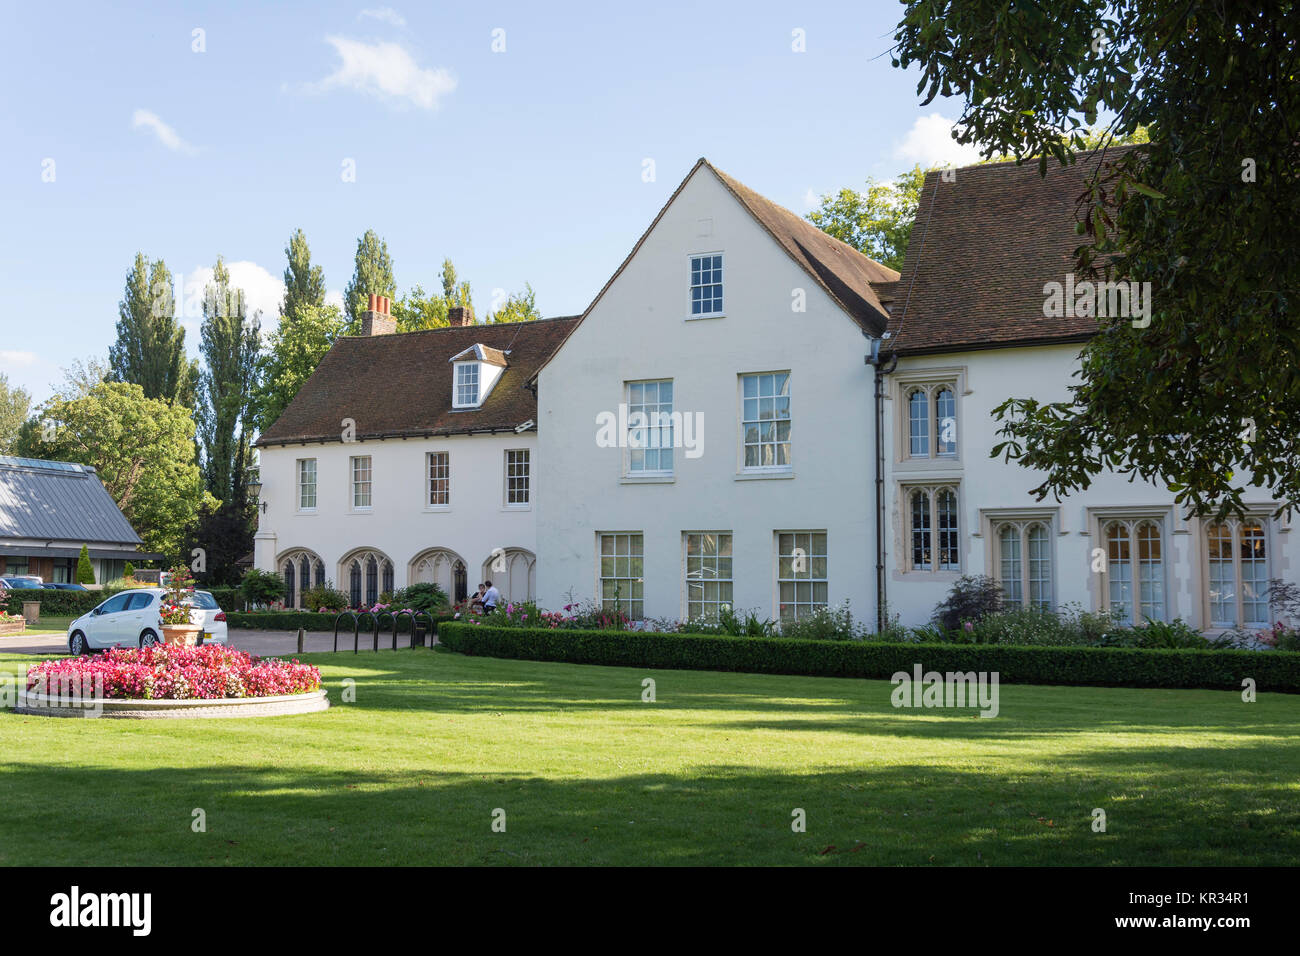 14th century The Priory building (Ware Town Council), High Street, Ware, Hertfordshire, England, United Kingdom - Stock Image